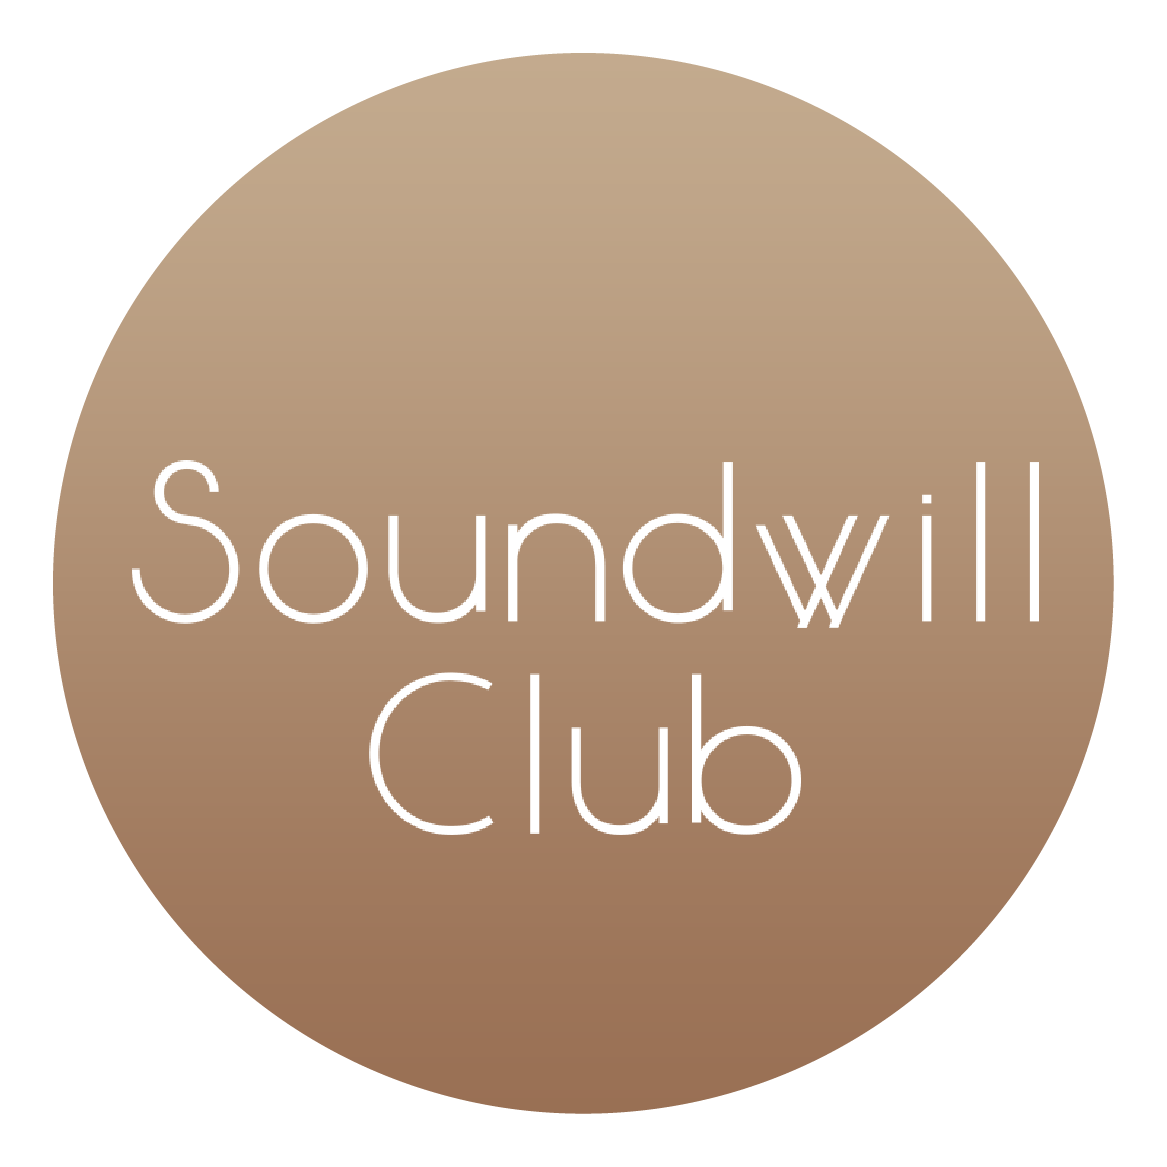 Soundwill Club Logo